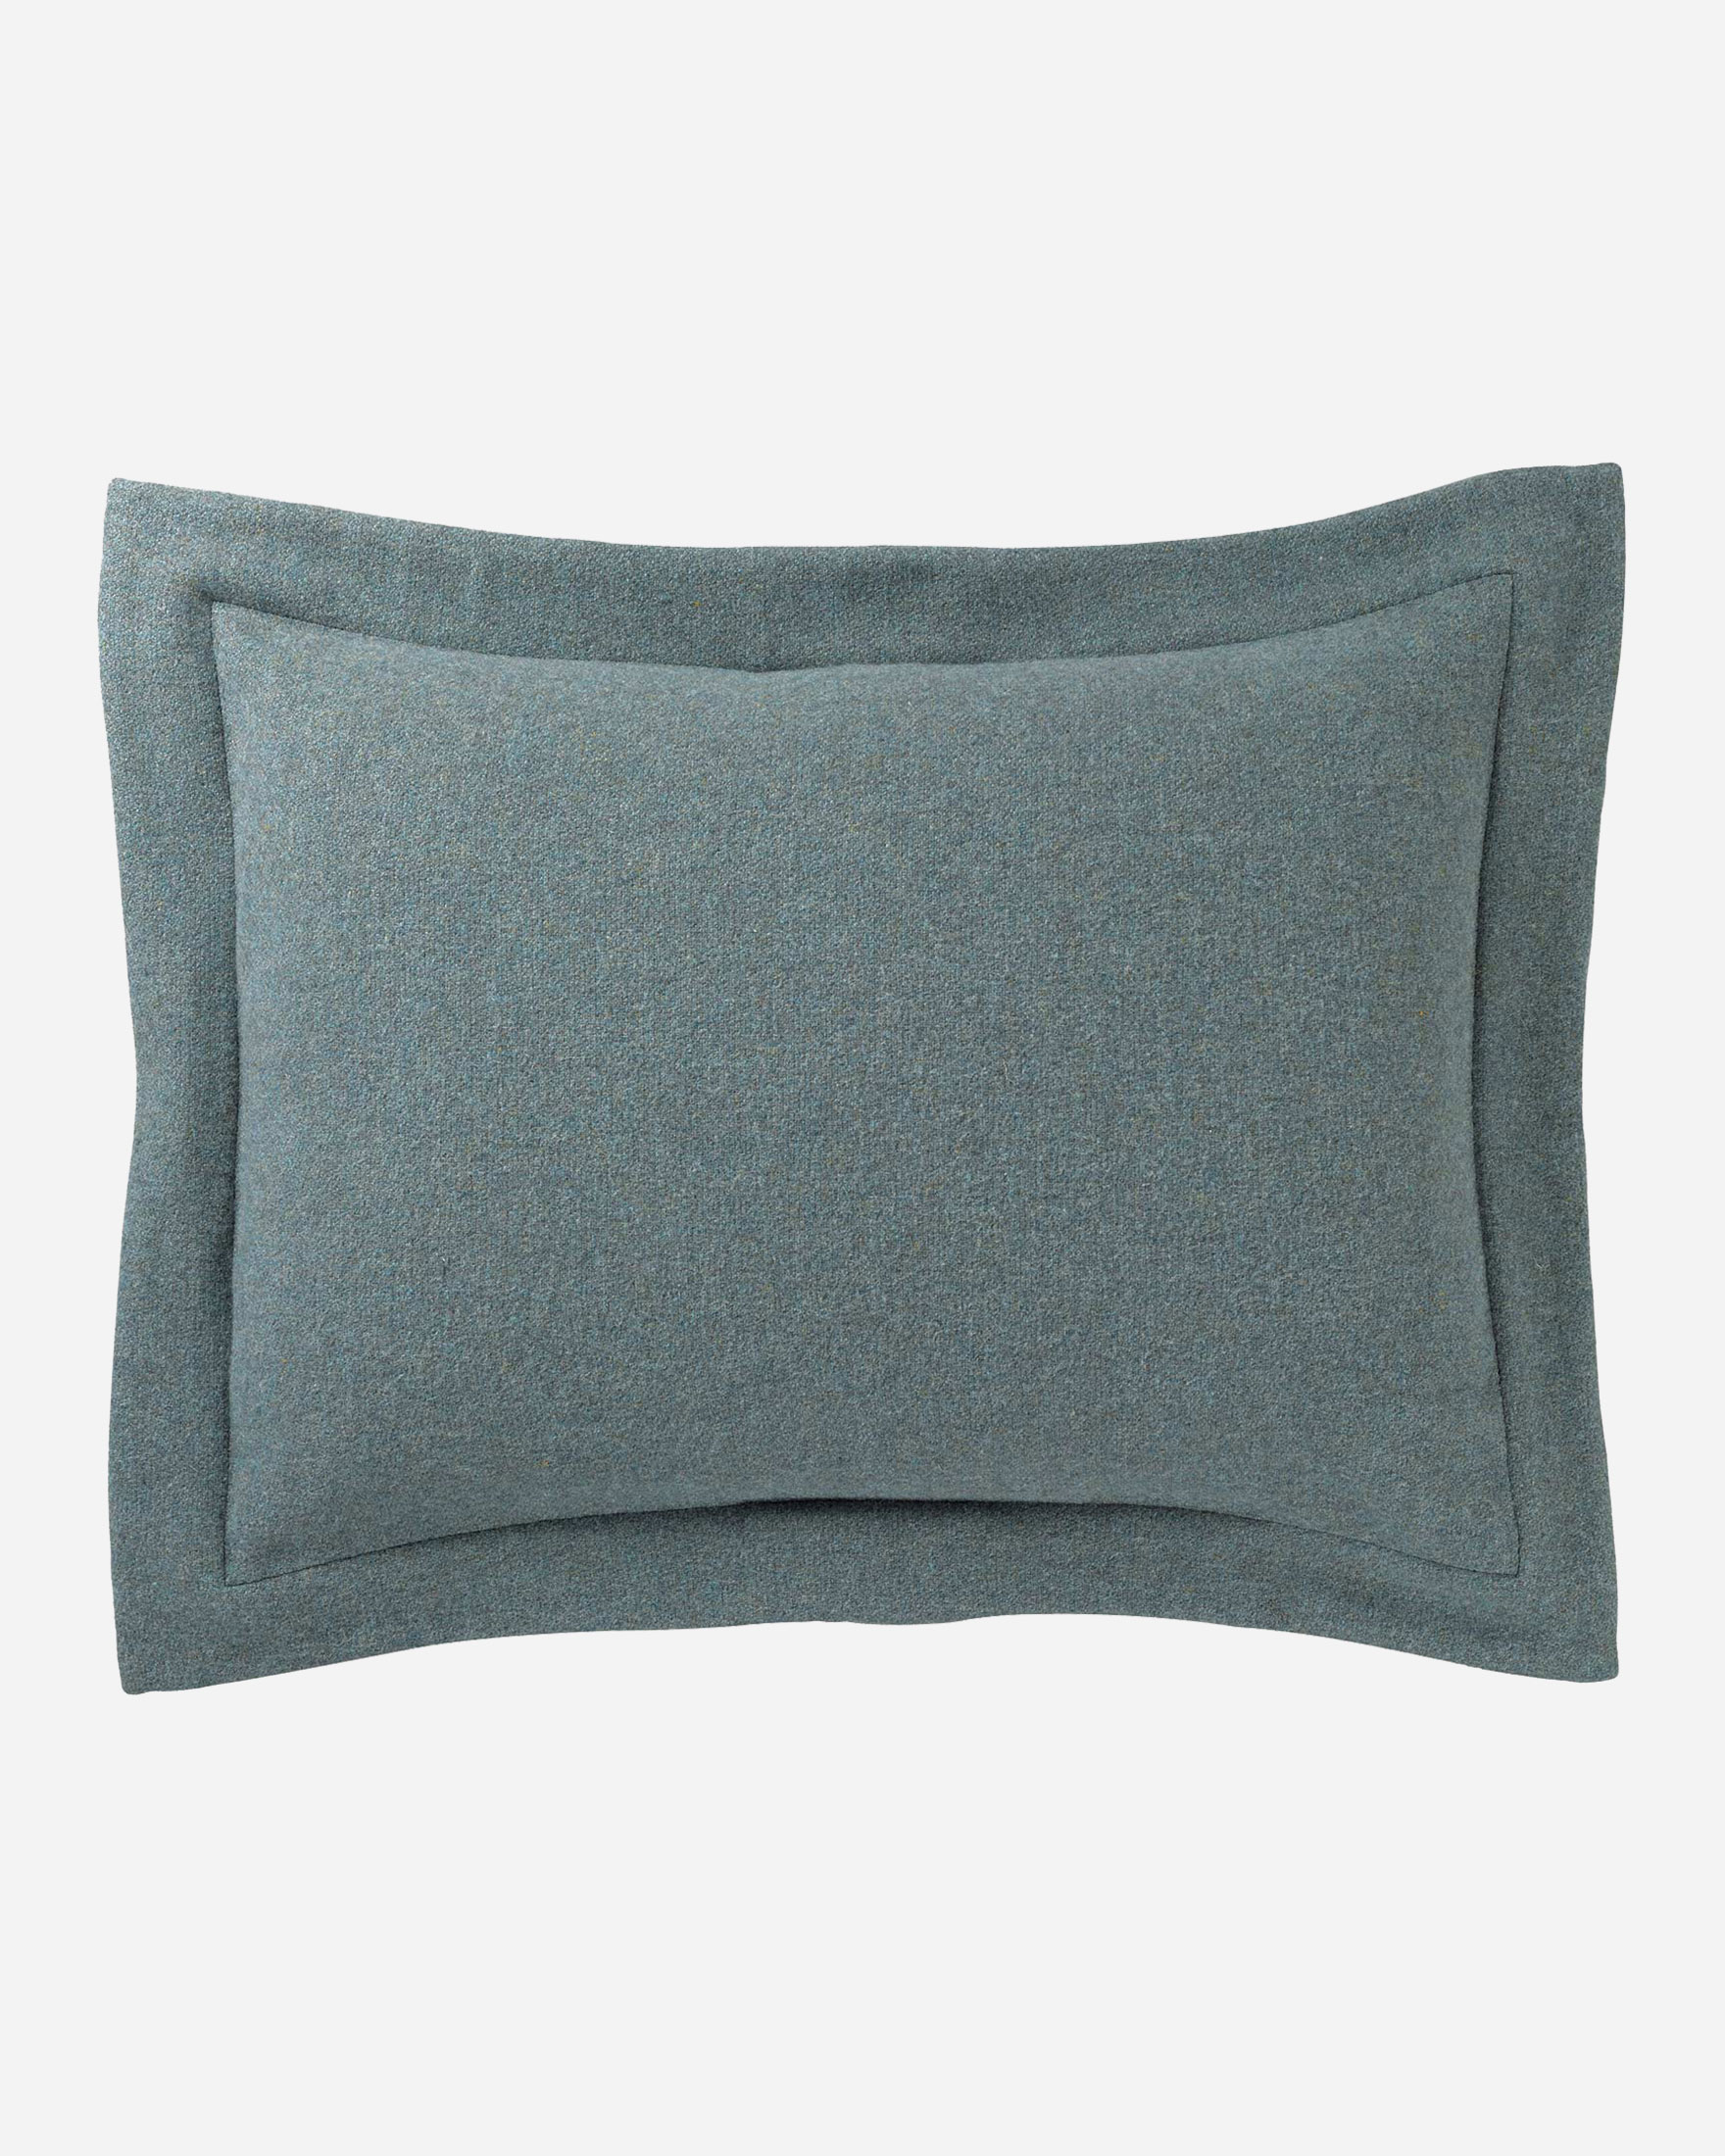 ECO-WISE WOOL EASY-CARE SHAM, SHALE BLUE, large